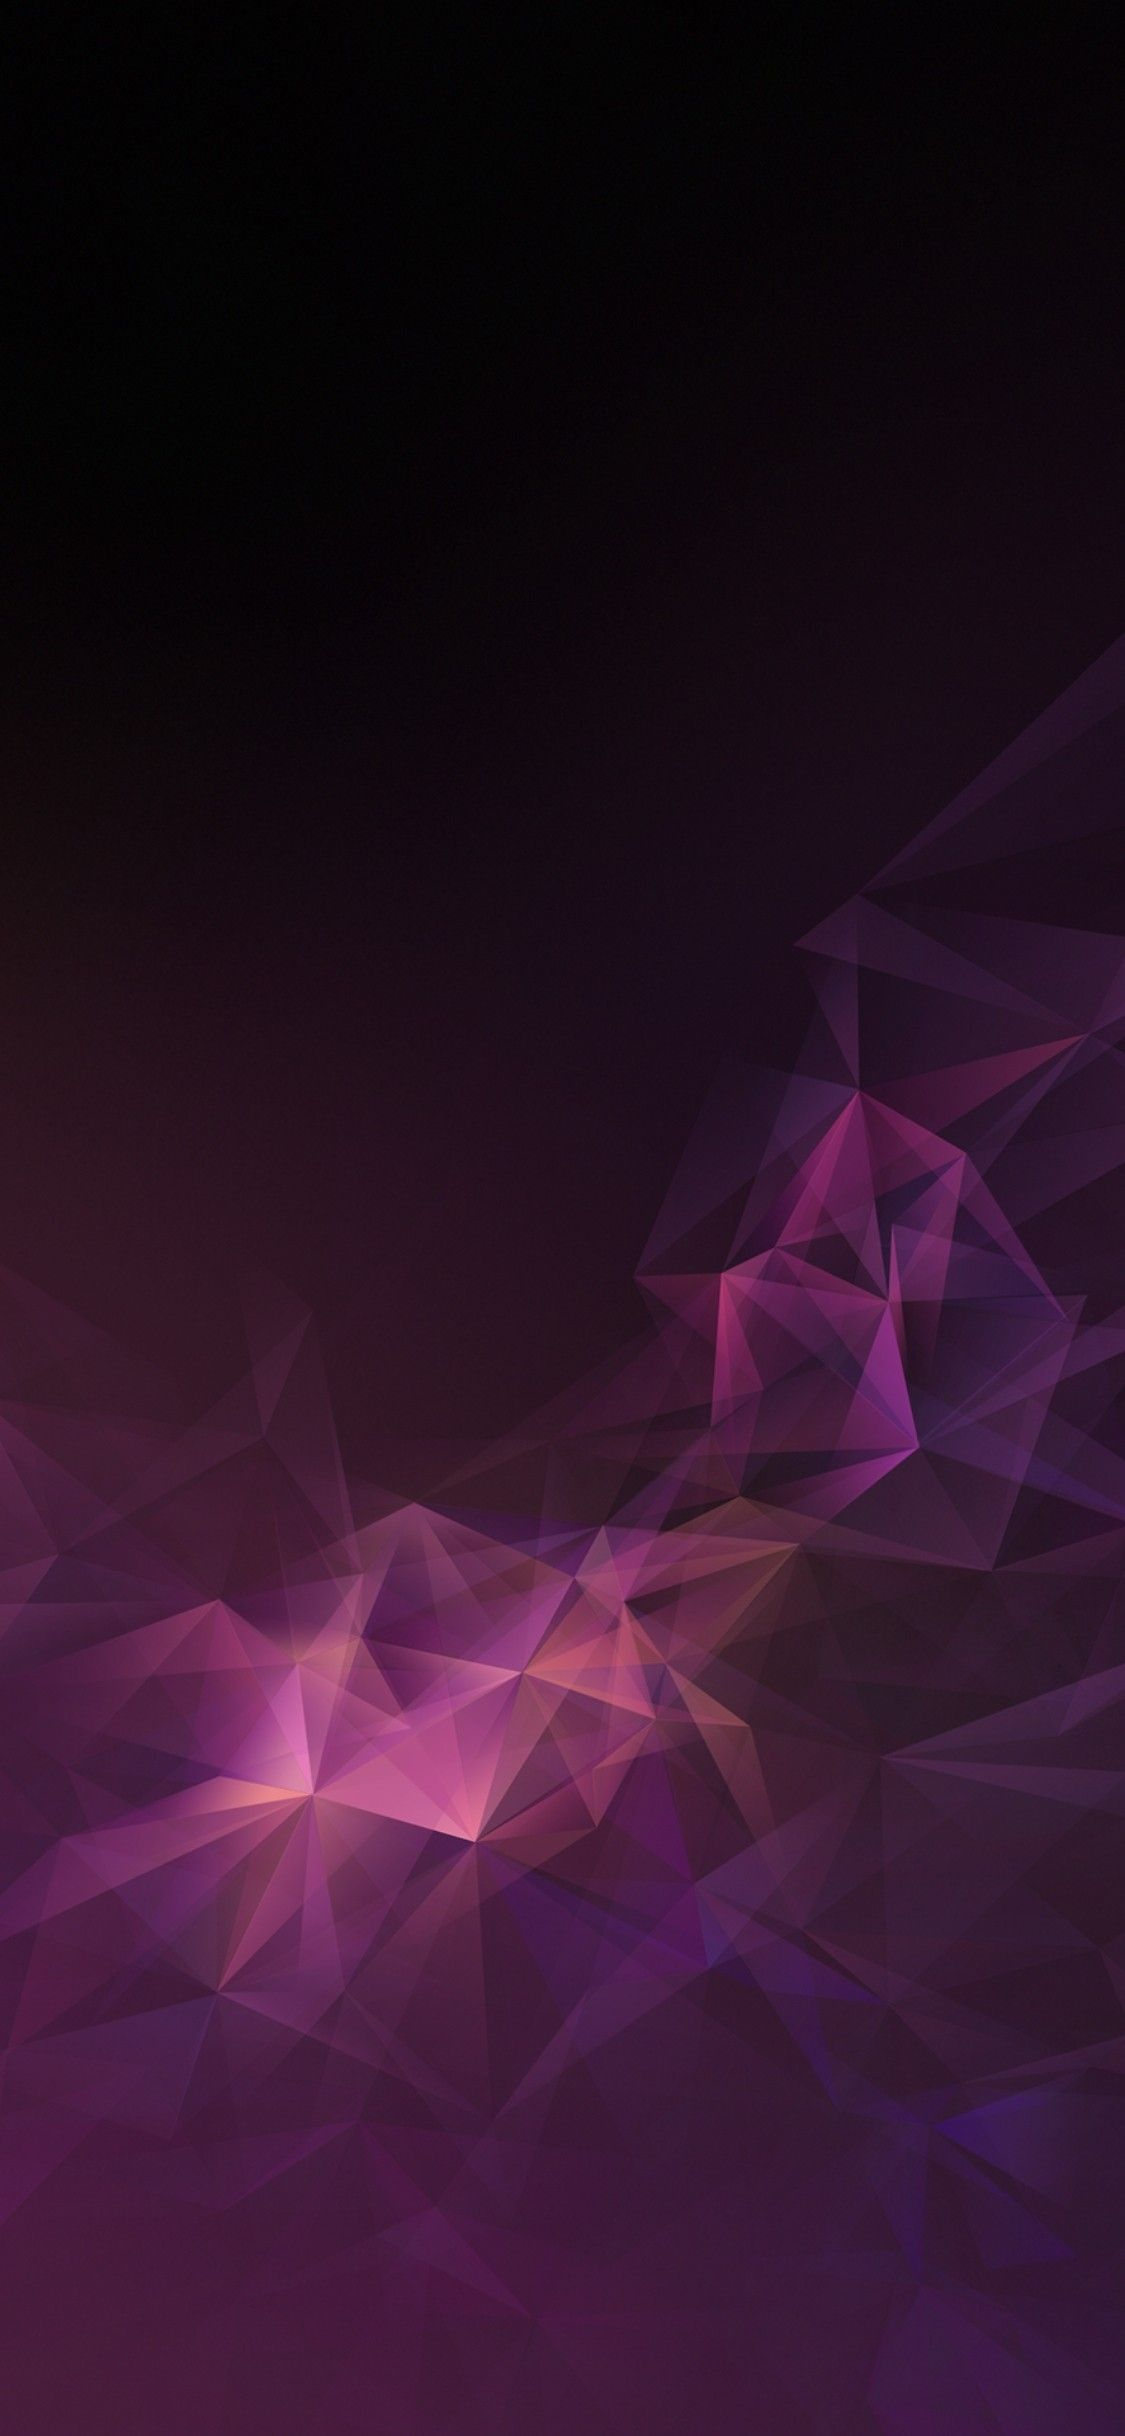 Ruby S9 S9 Plus Wallpaper Galaxy Colour Abstract Digital Art